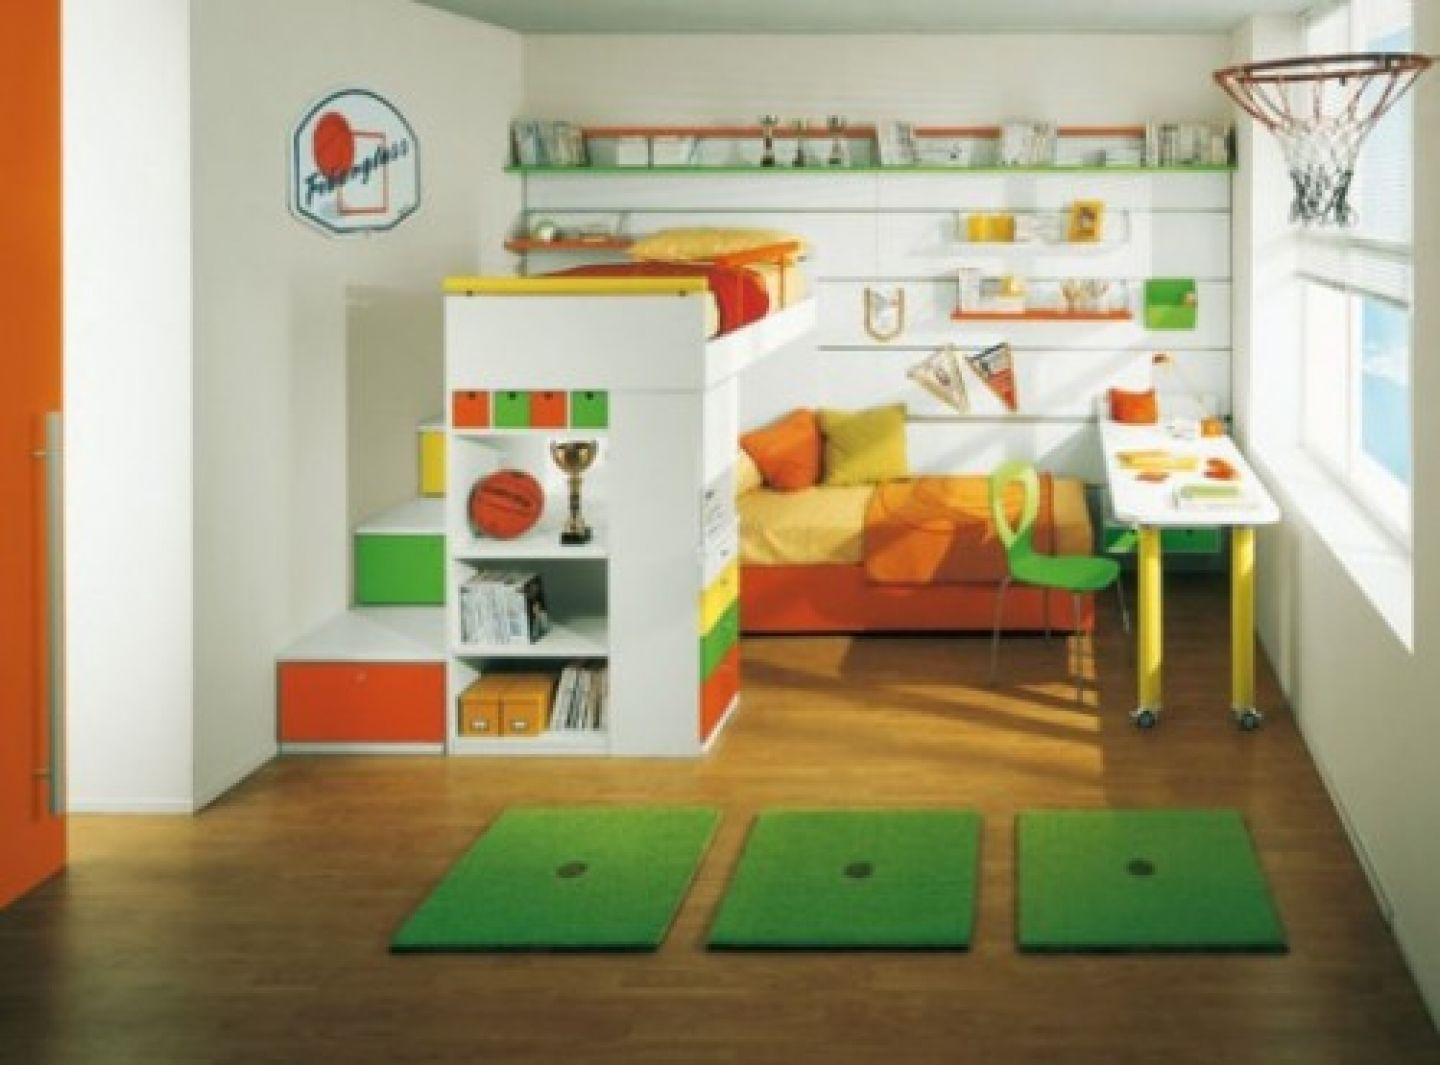 Amazing ikea ideas amazing ikea kids bedroom by fun design ideas image id 14491 giesendesign - Kids bedroom photo ...